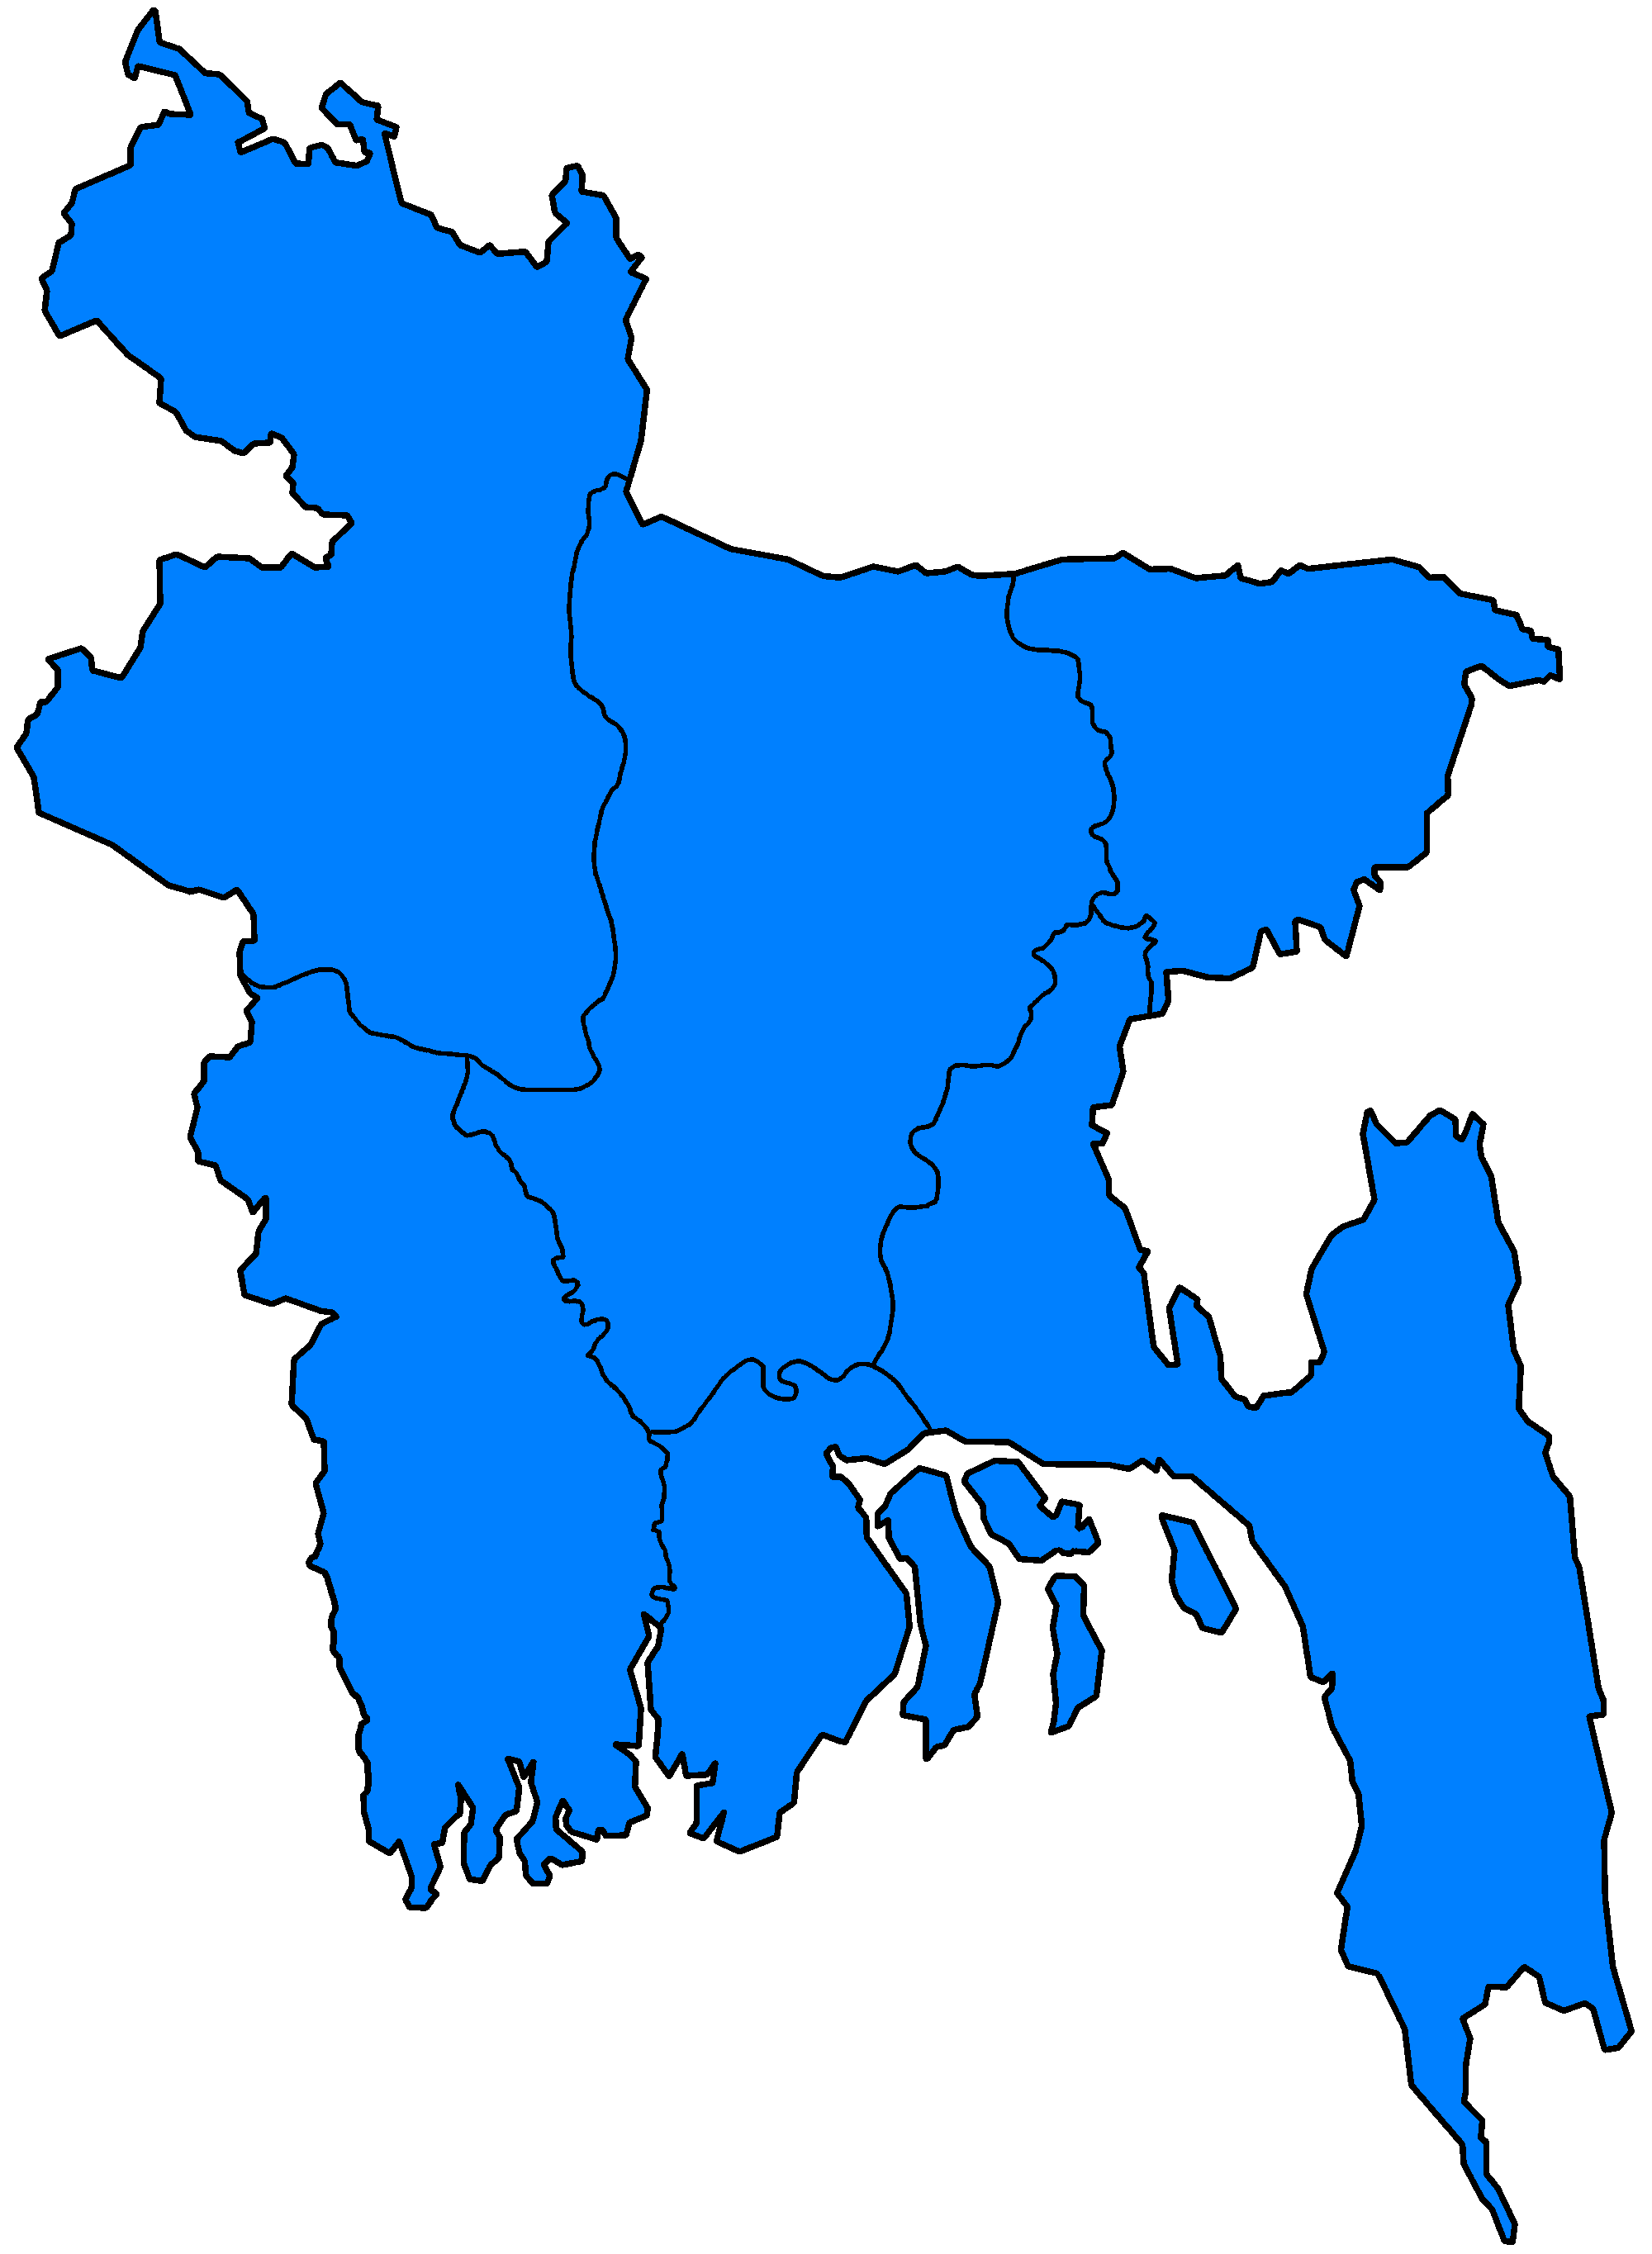 File:Bangladesh divisions flood hit between July 3 and August 15.